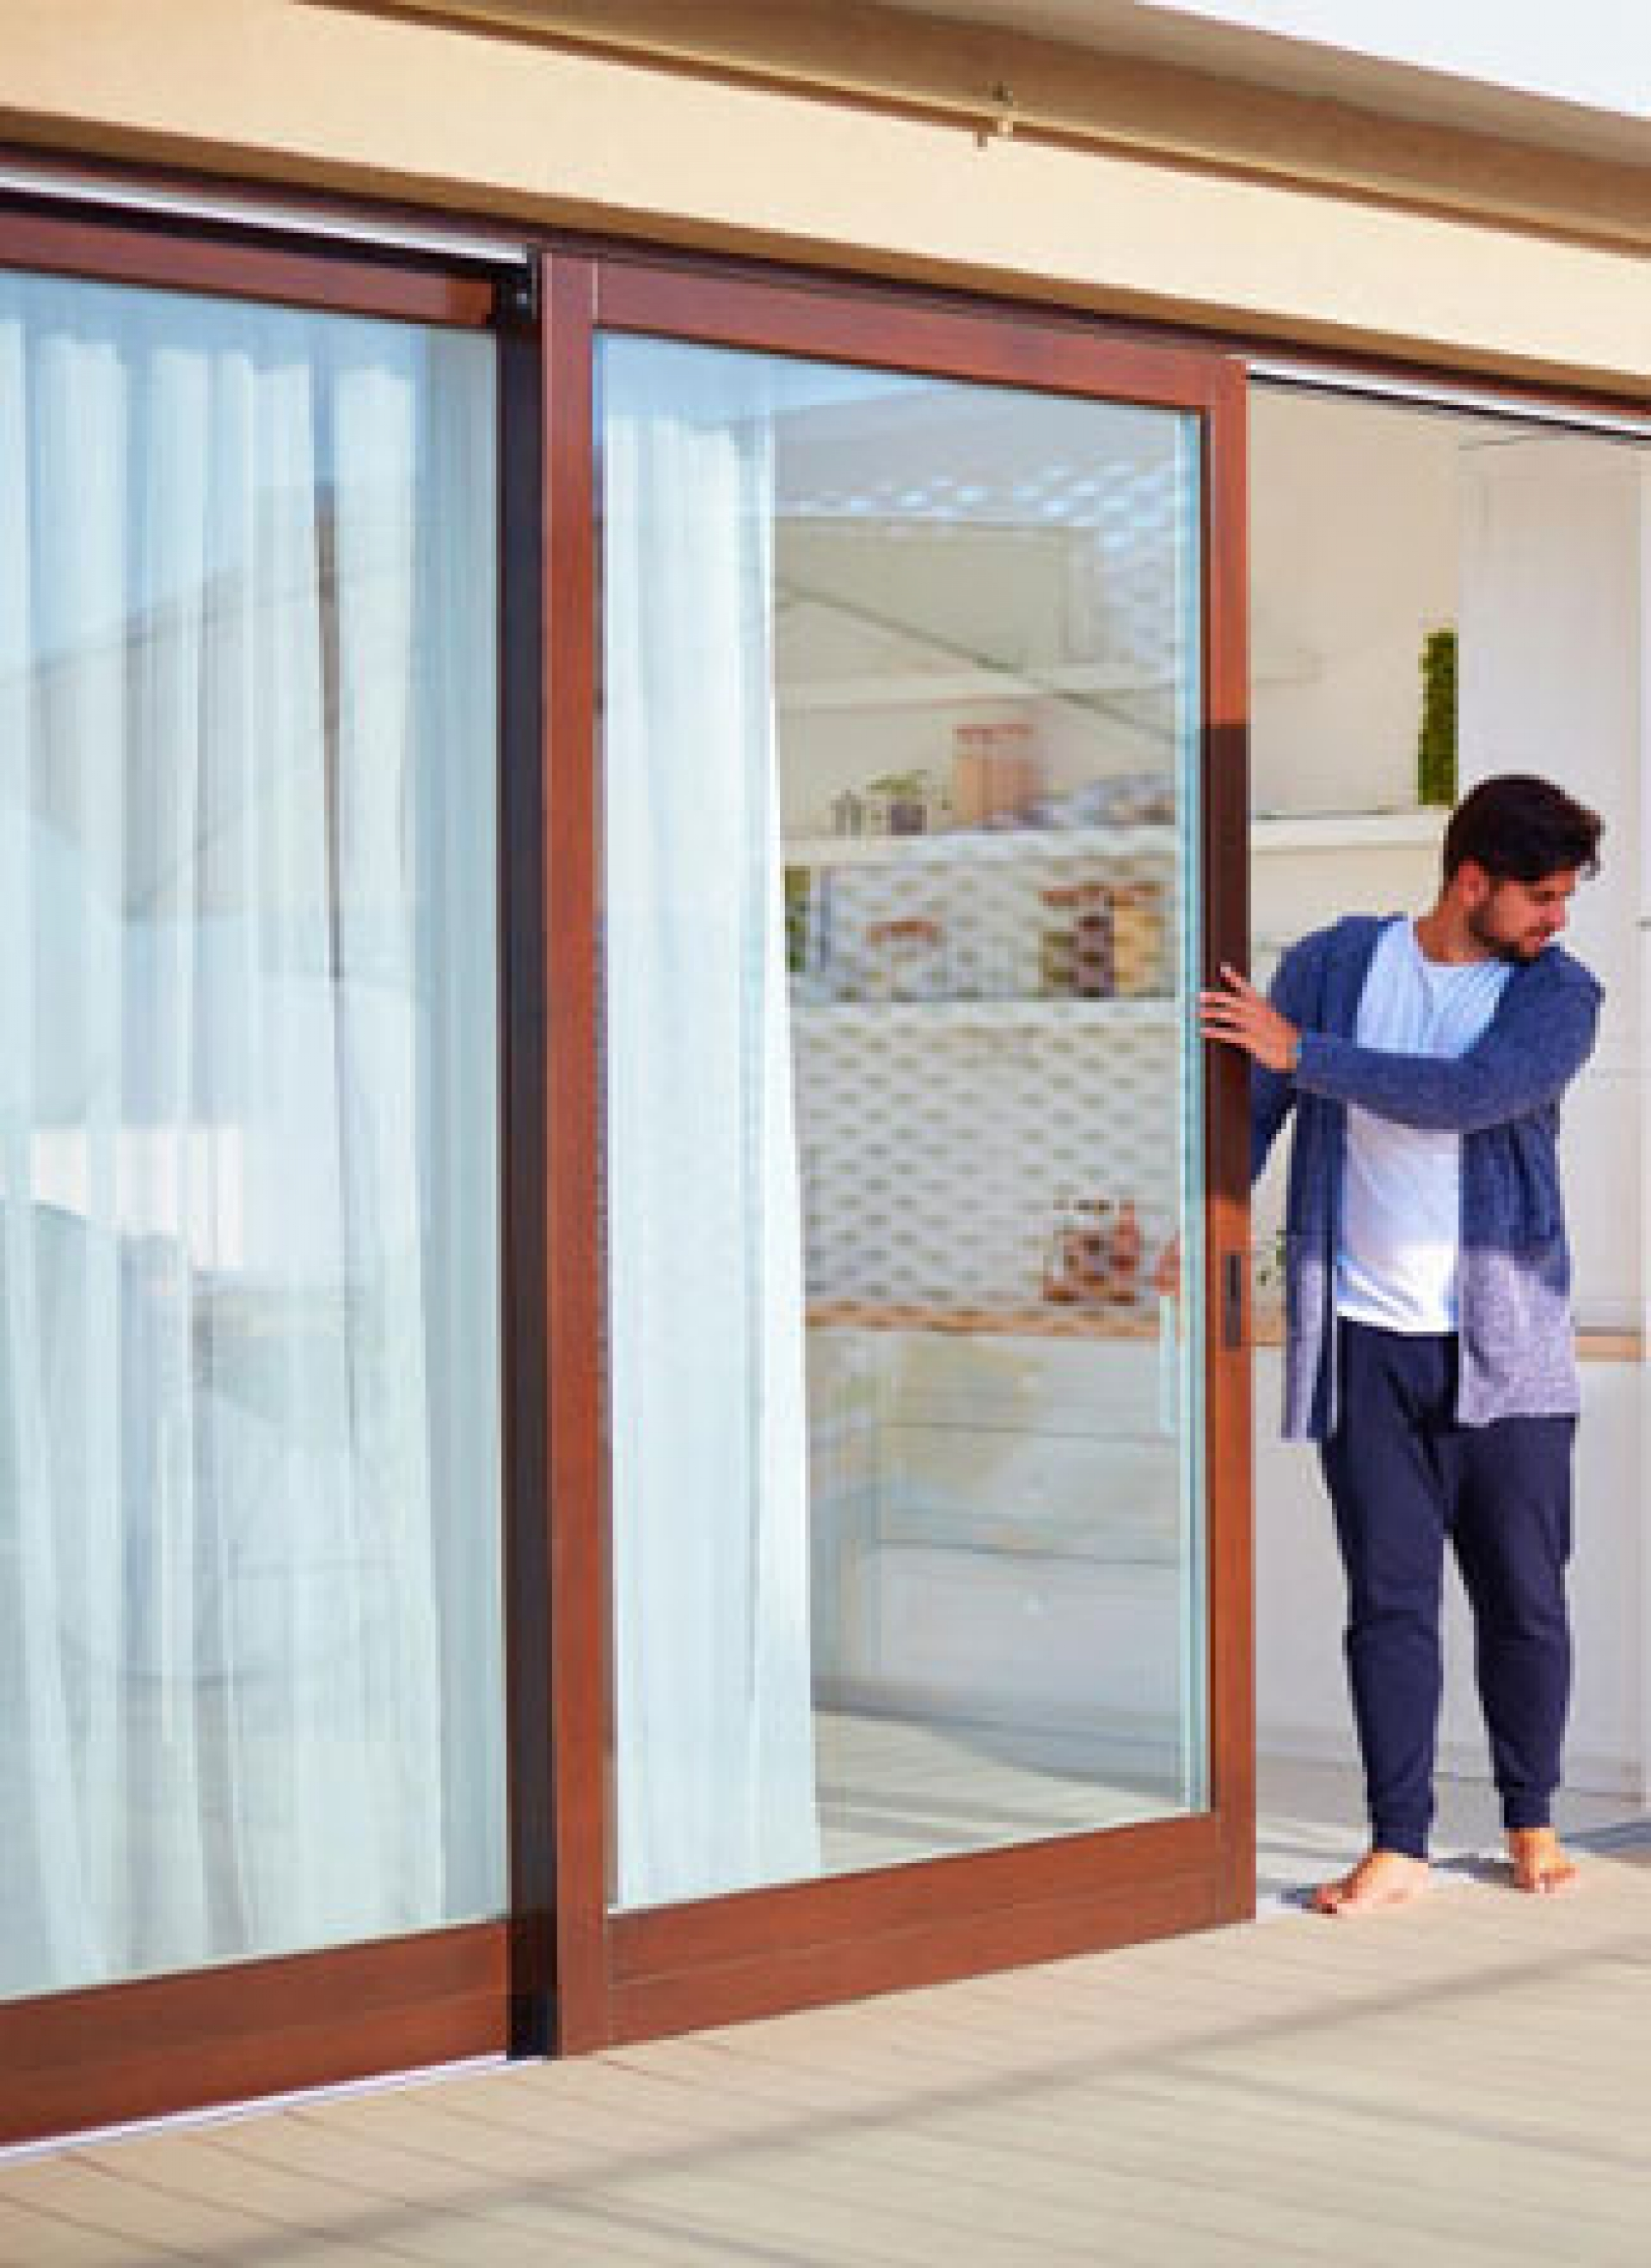 Sliding doors HST and Patio - HST sliding doors